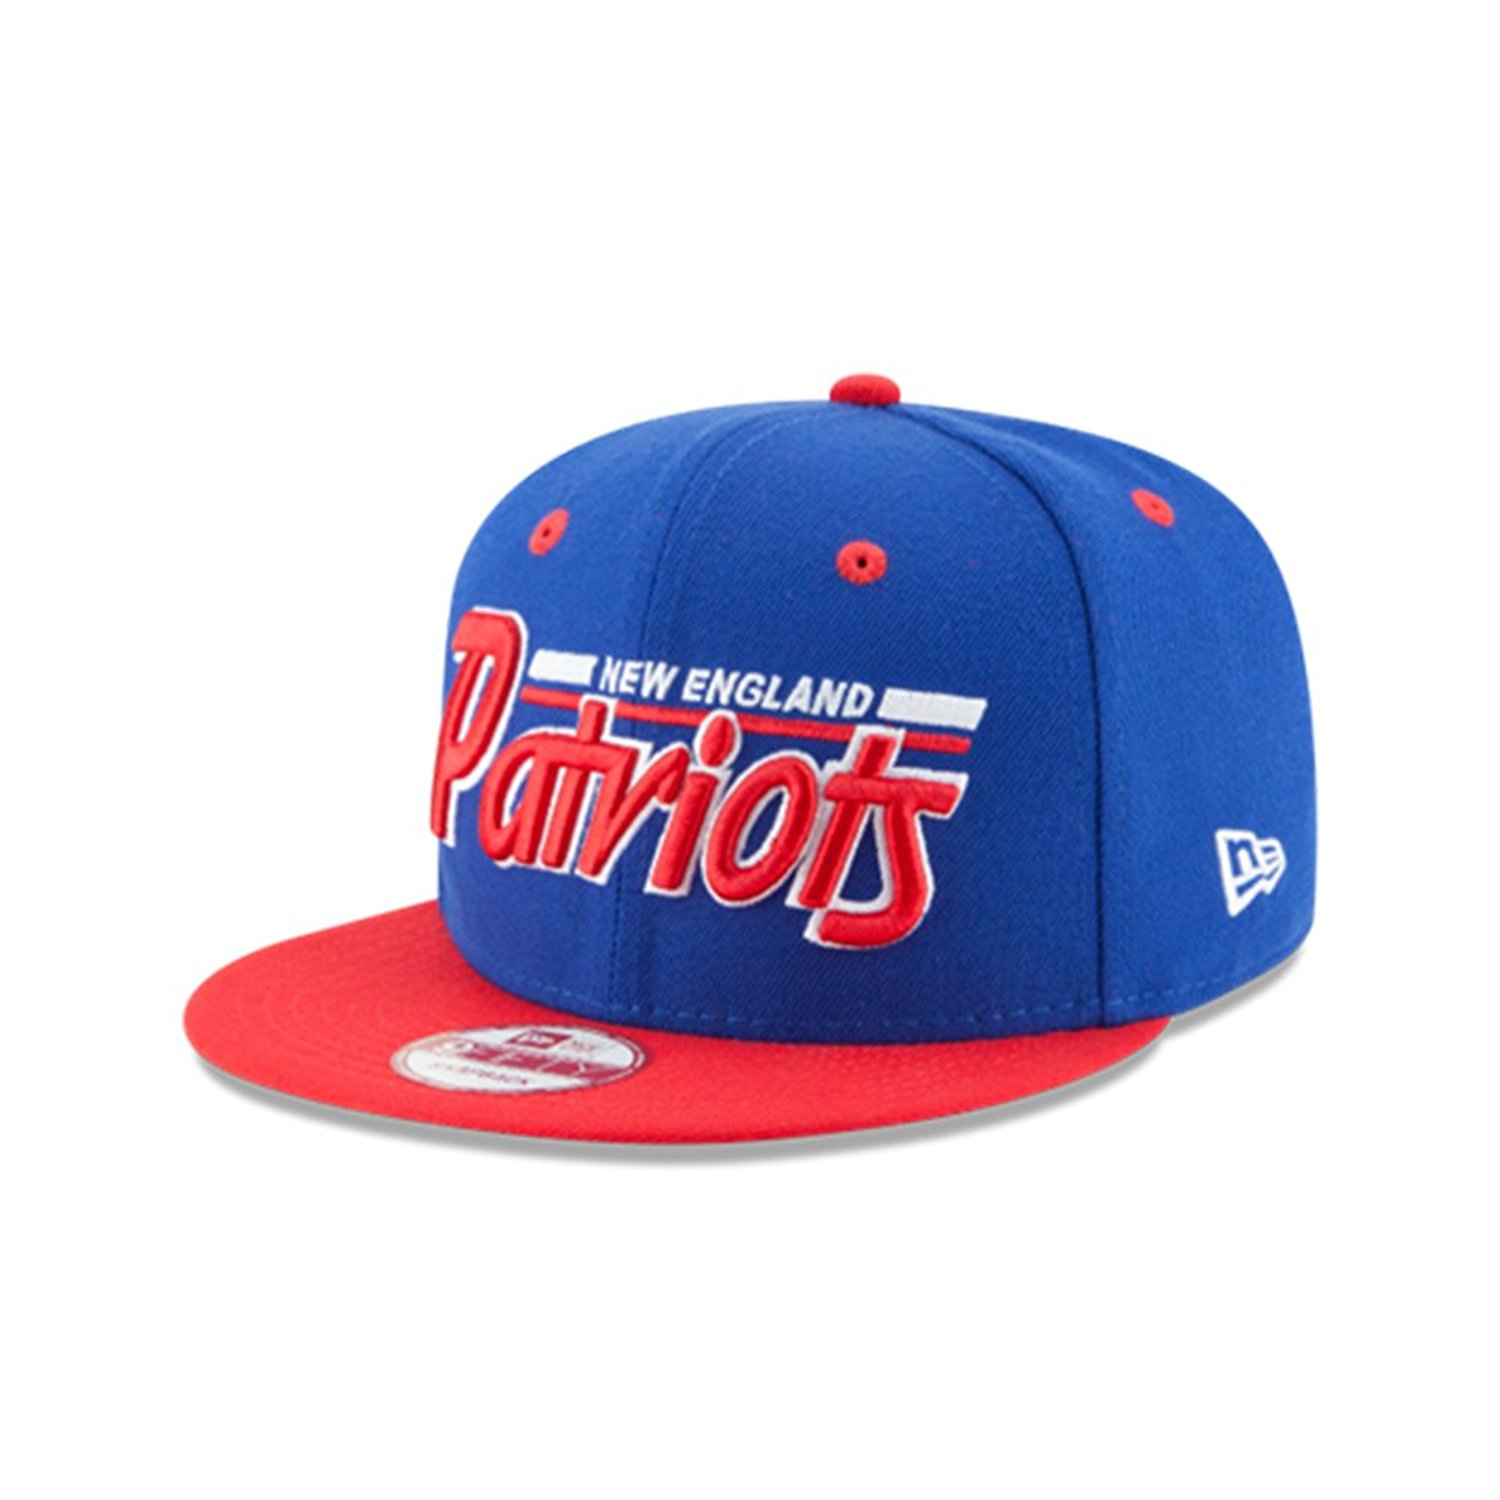 a68affefcde2d9 Get Quotations · New England Patriots New Era 9Fifty 2T Retro Snapback Hat